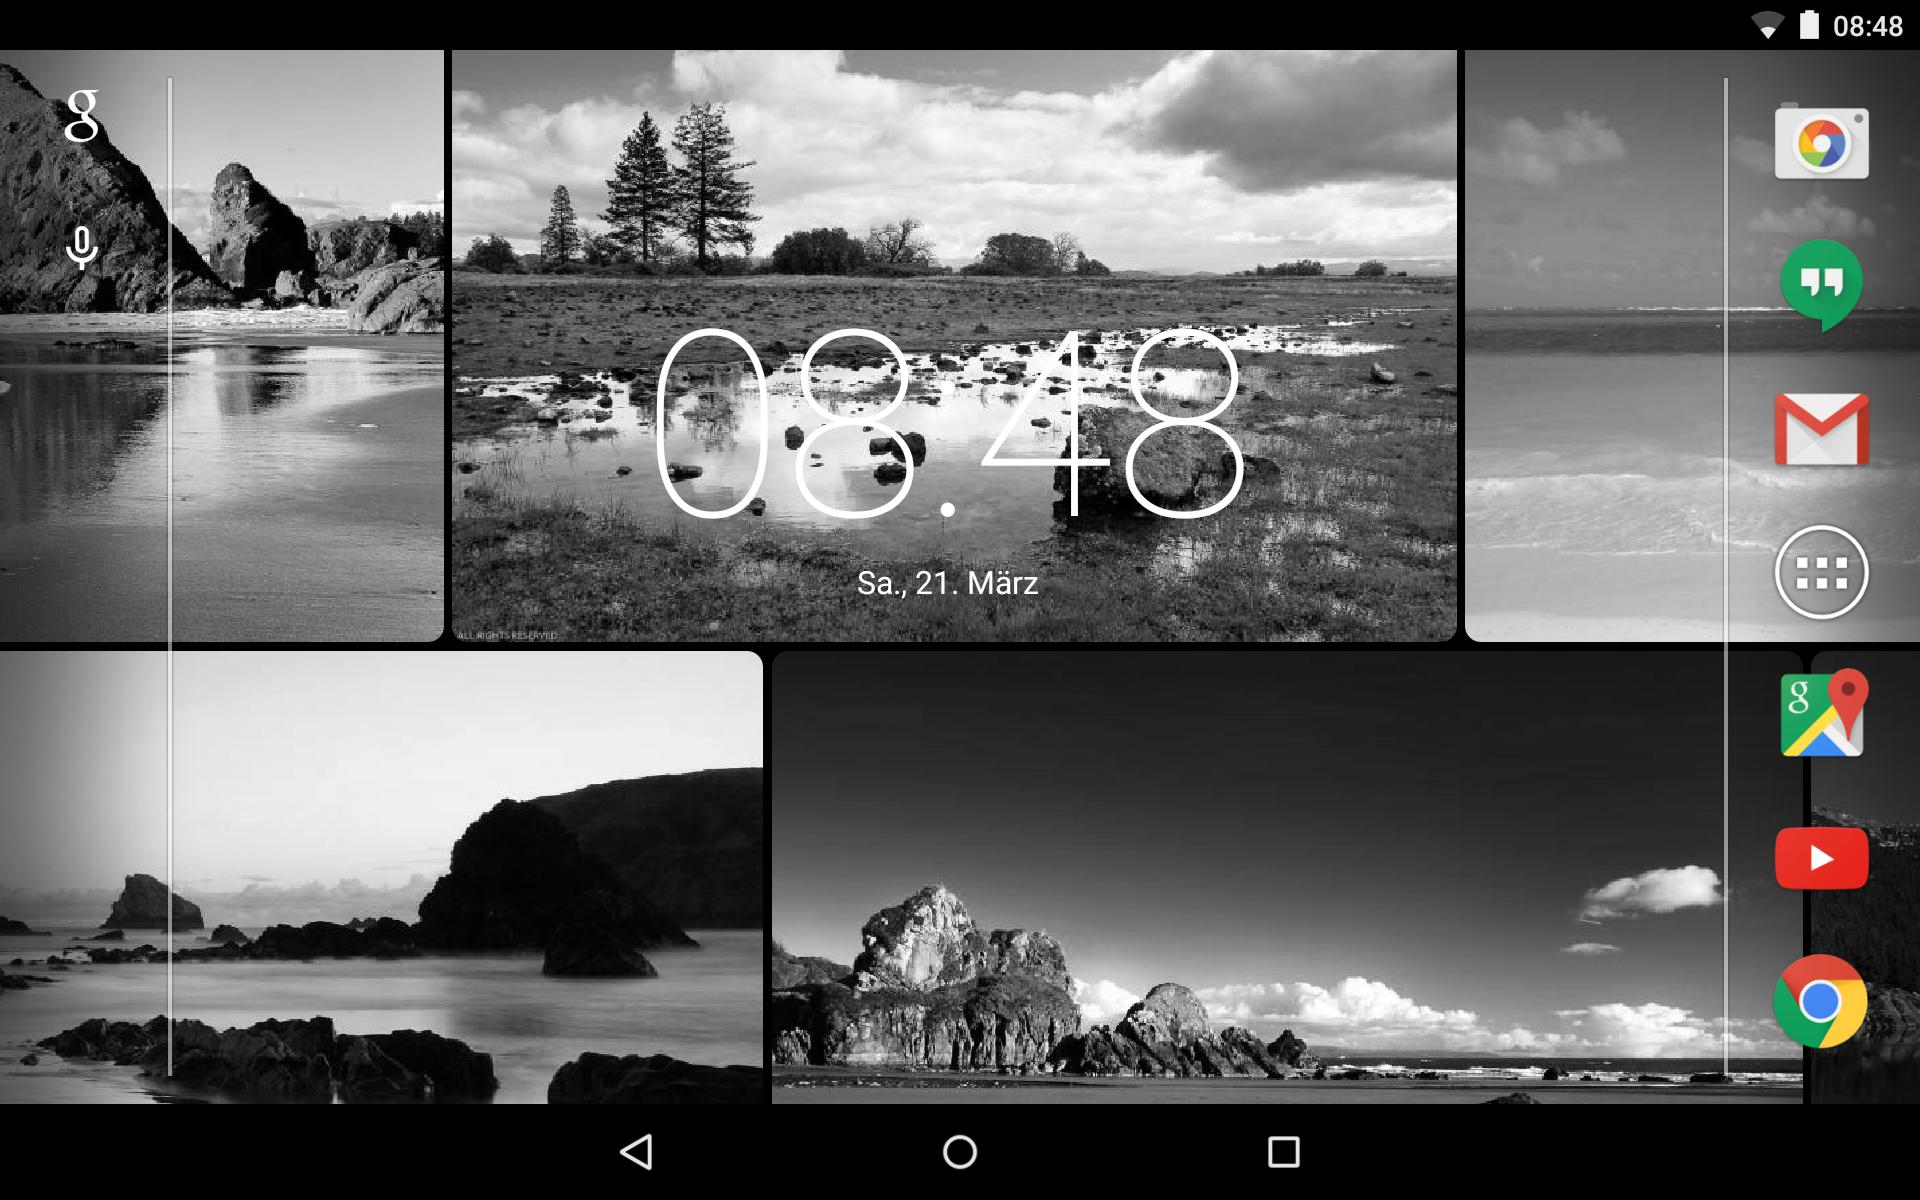 Camera Pictures Live Wallpaper for Android - APK Download